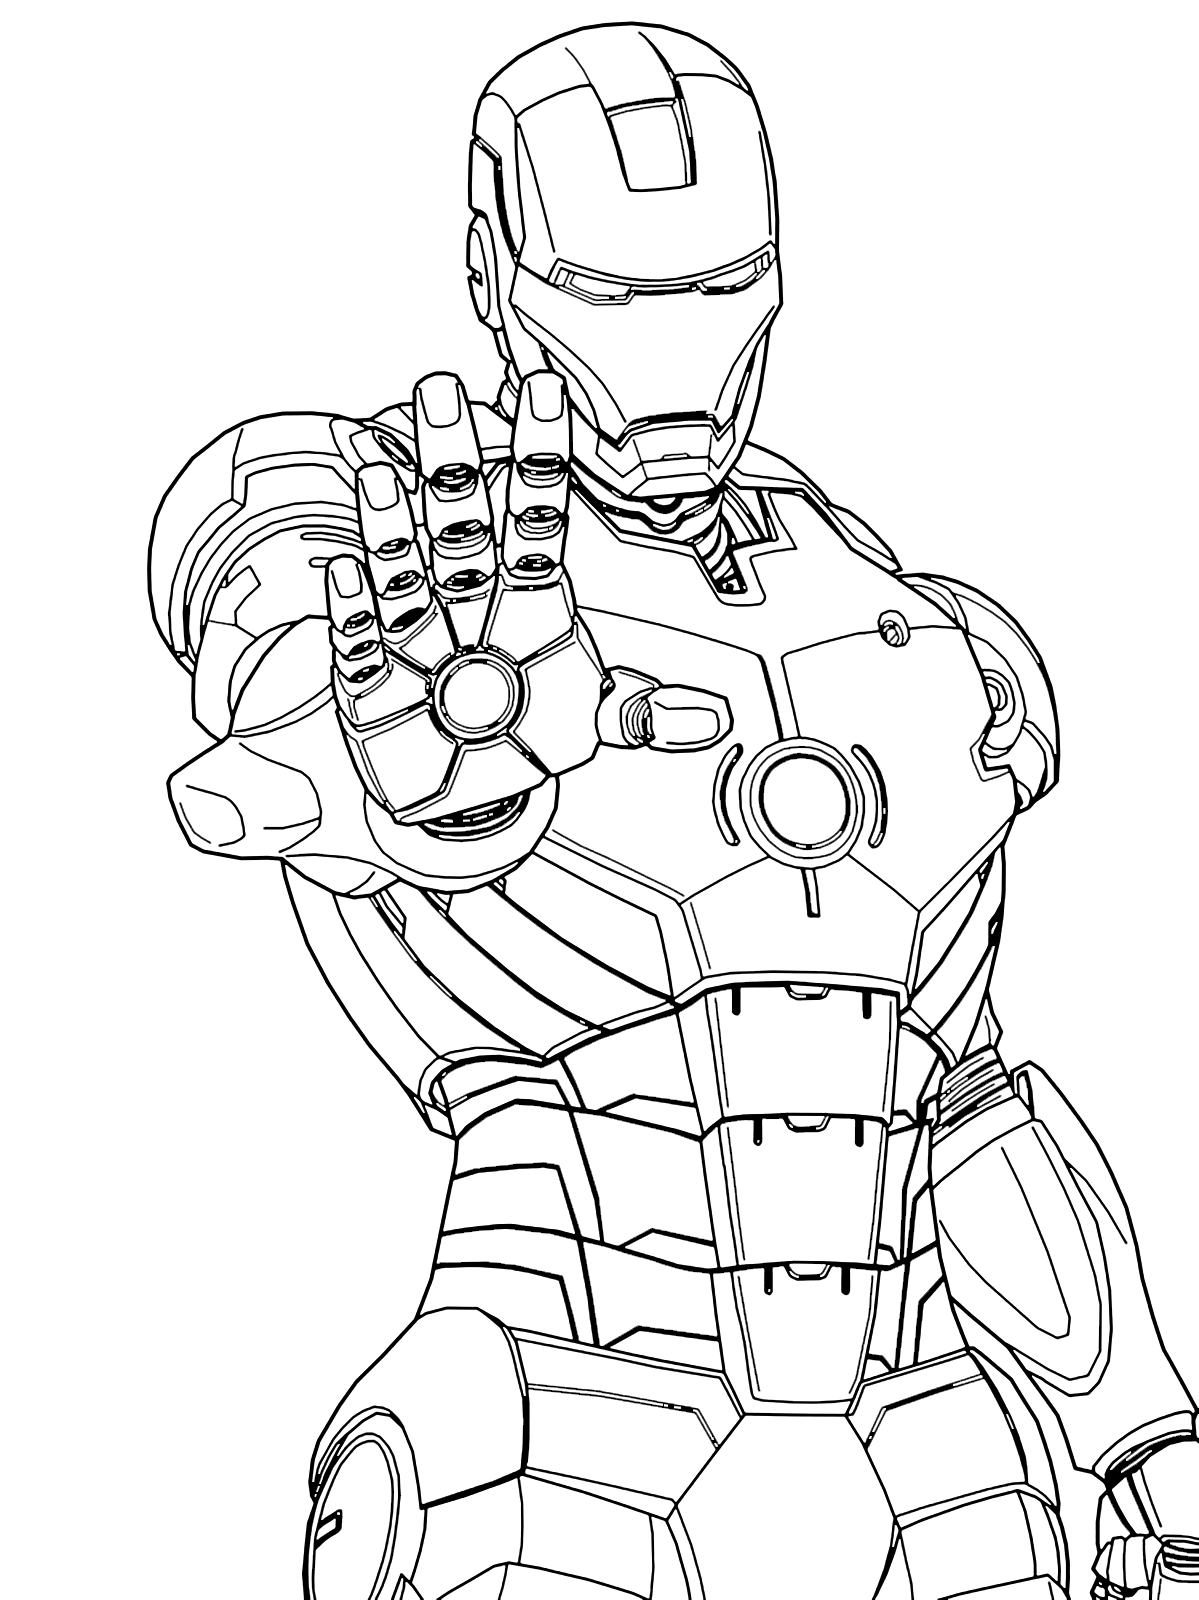 iron man pictures for colouring top 20 free printable iron man coloring pages online pictures for man iron colouring